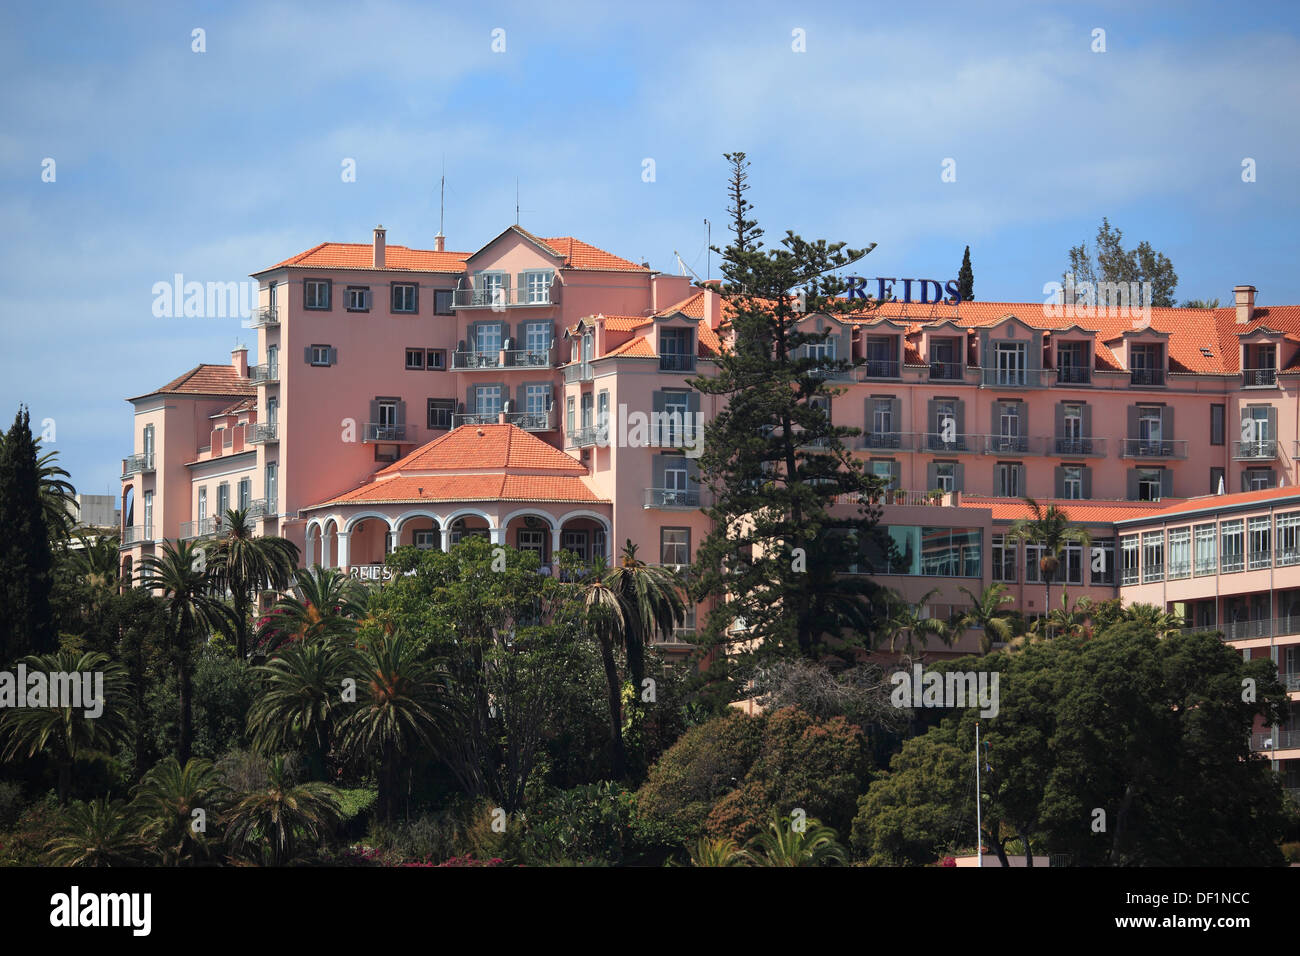 madeira funchal hotel reid 39 s palace hotel reid stock photo royalty free image 60889708 alamy. Black Bedroom Furniture Sets. Home Design Ideas